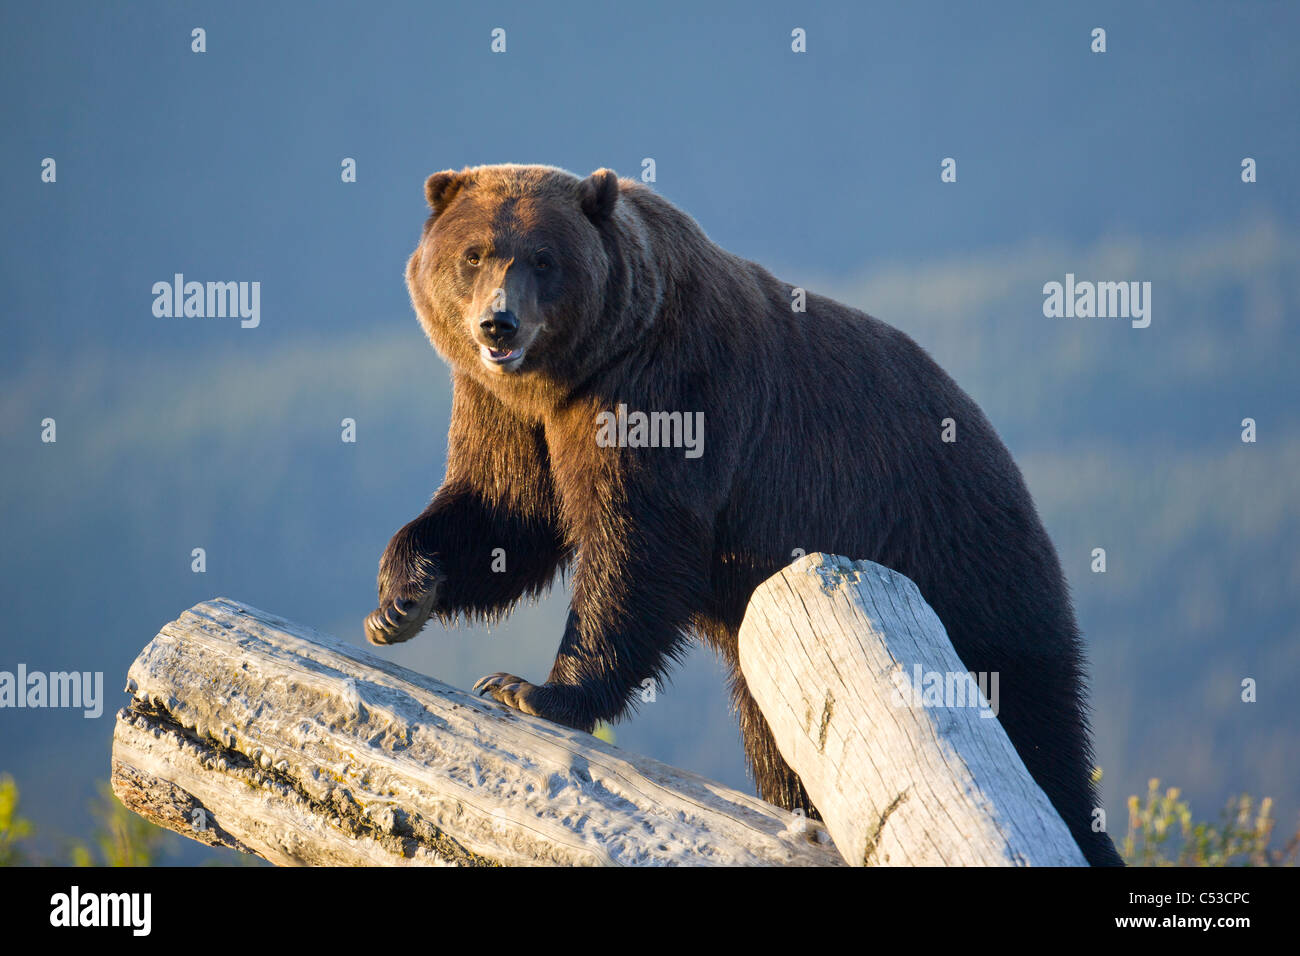 A captive Brown bear stands on a log pile in late afternoon at Alaska Wildlife Conservation Center, Alaska, Summer. - Stock Image